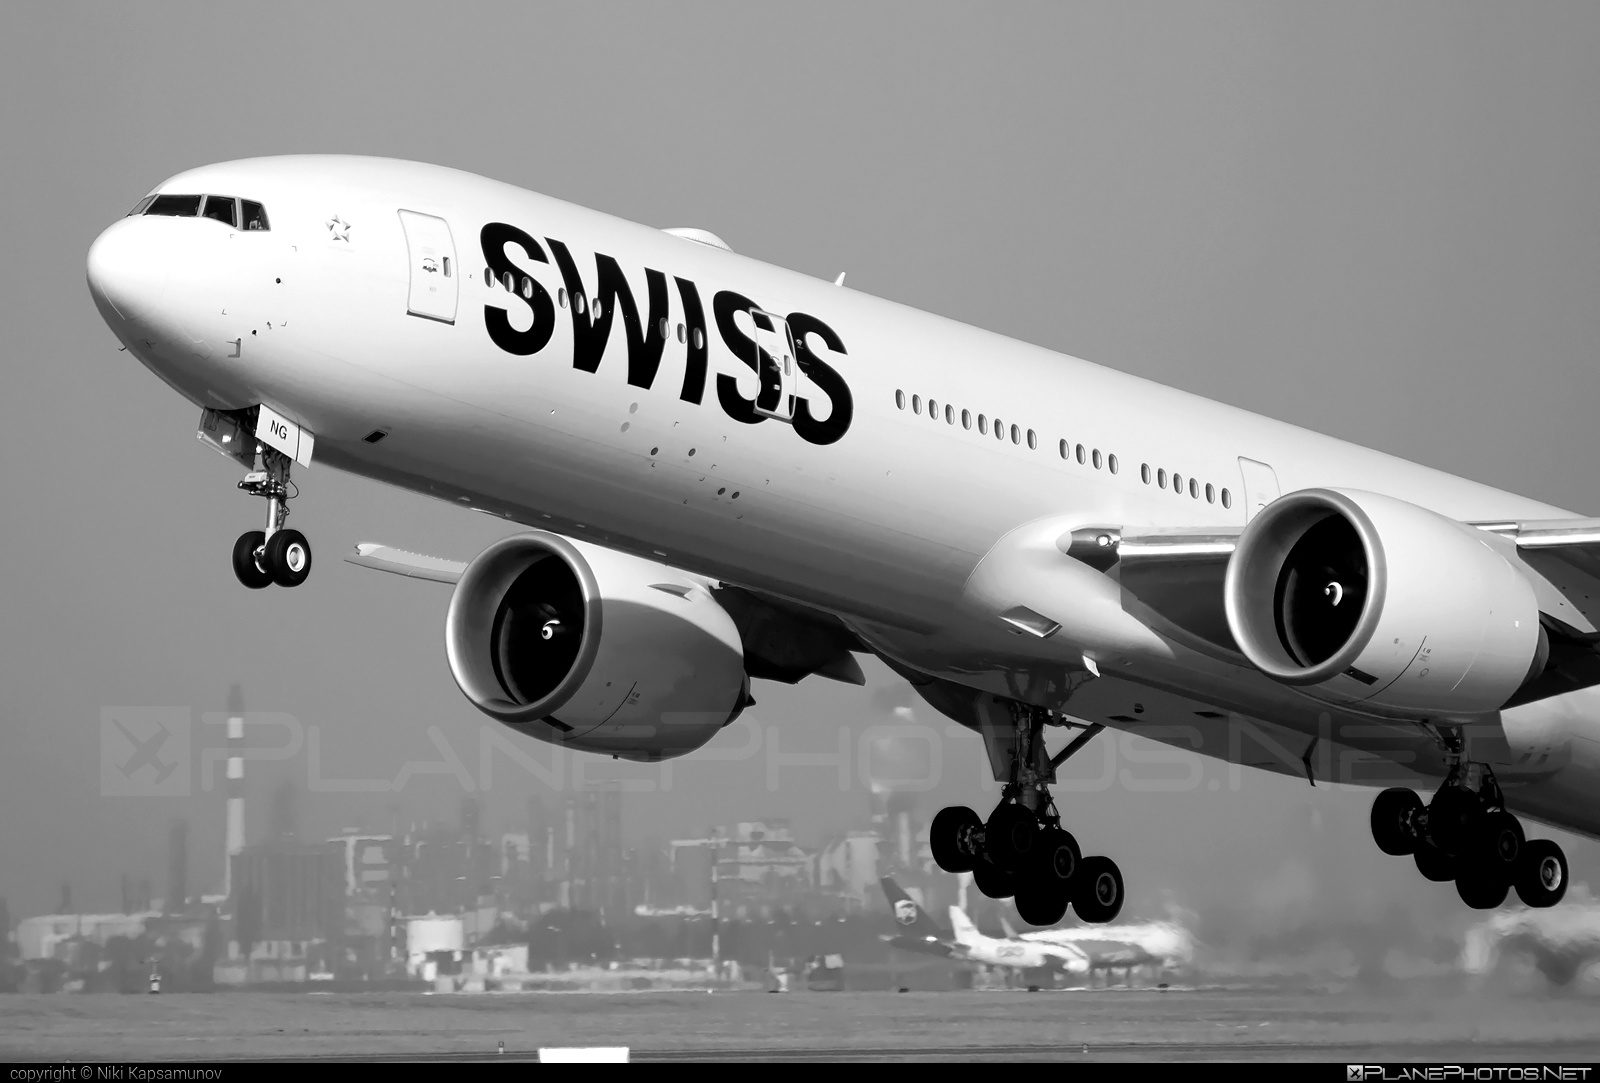 Boeing 777-300ER - HB-JNG operated by Swiss International Air Lines #b777 #b777er #boeing #boeing777 #swiss #swissairlines #tripleseven